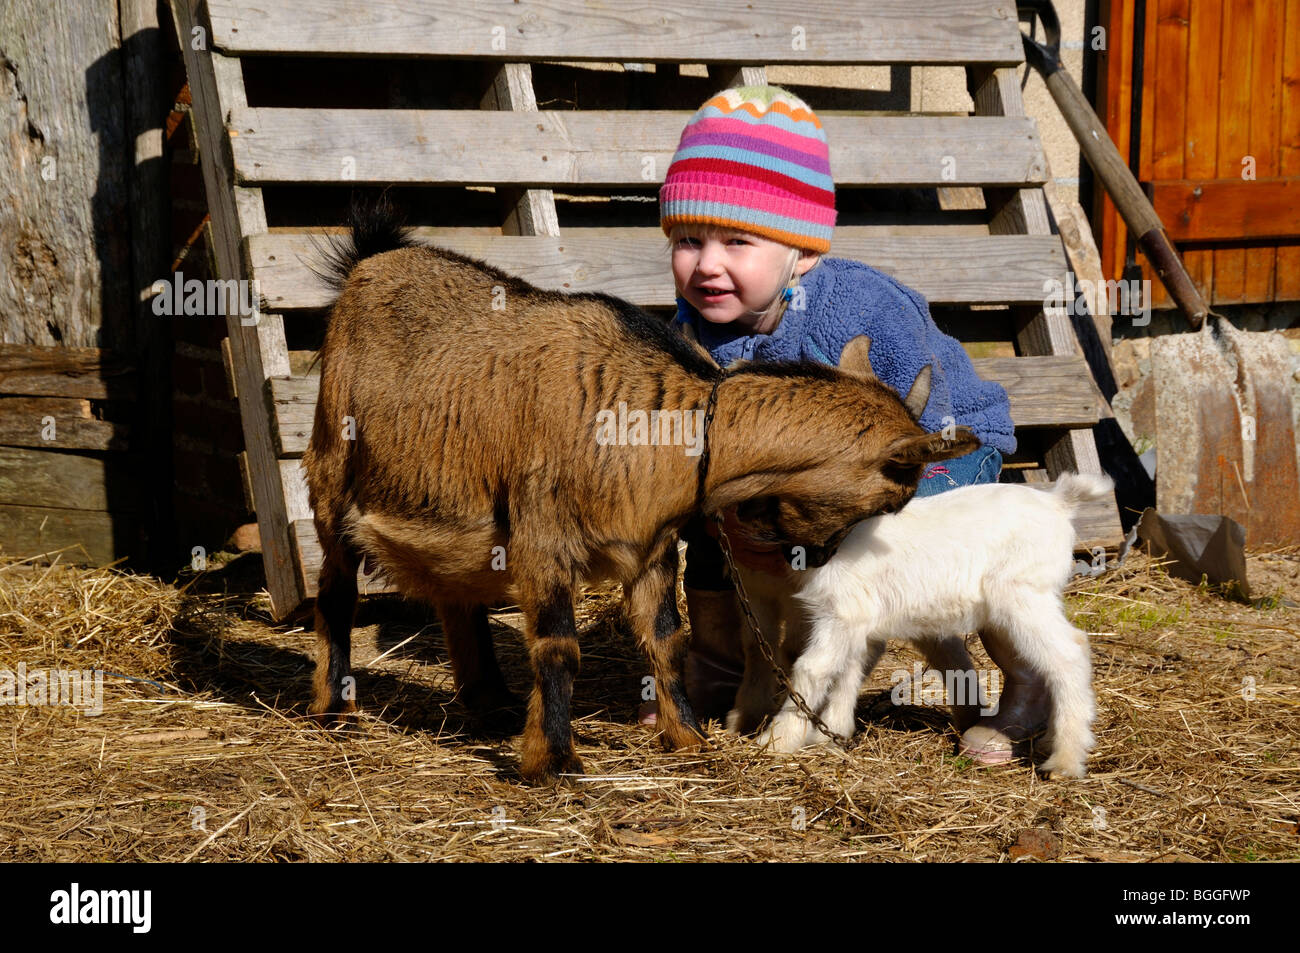 Stock photo of a 3 year old girl playing with a Pygmy goat and her kids on the family smallholding. - Stock Image